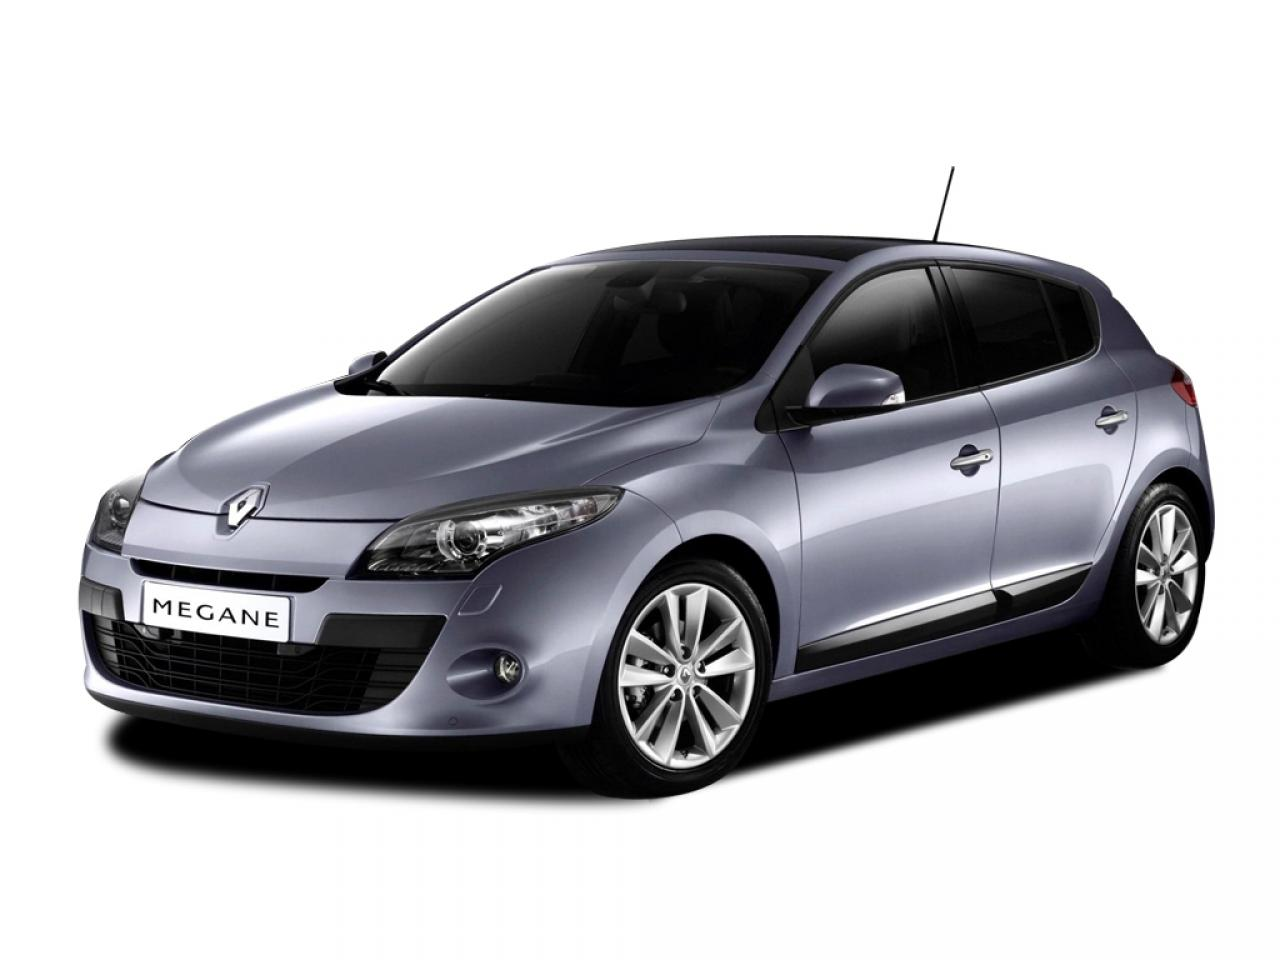 renault megane iii coupe 20 tce photos reviews news. Black Bedroom Furniture Sets. Home Design Ideas